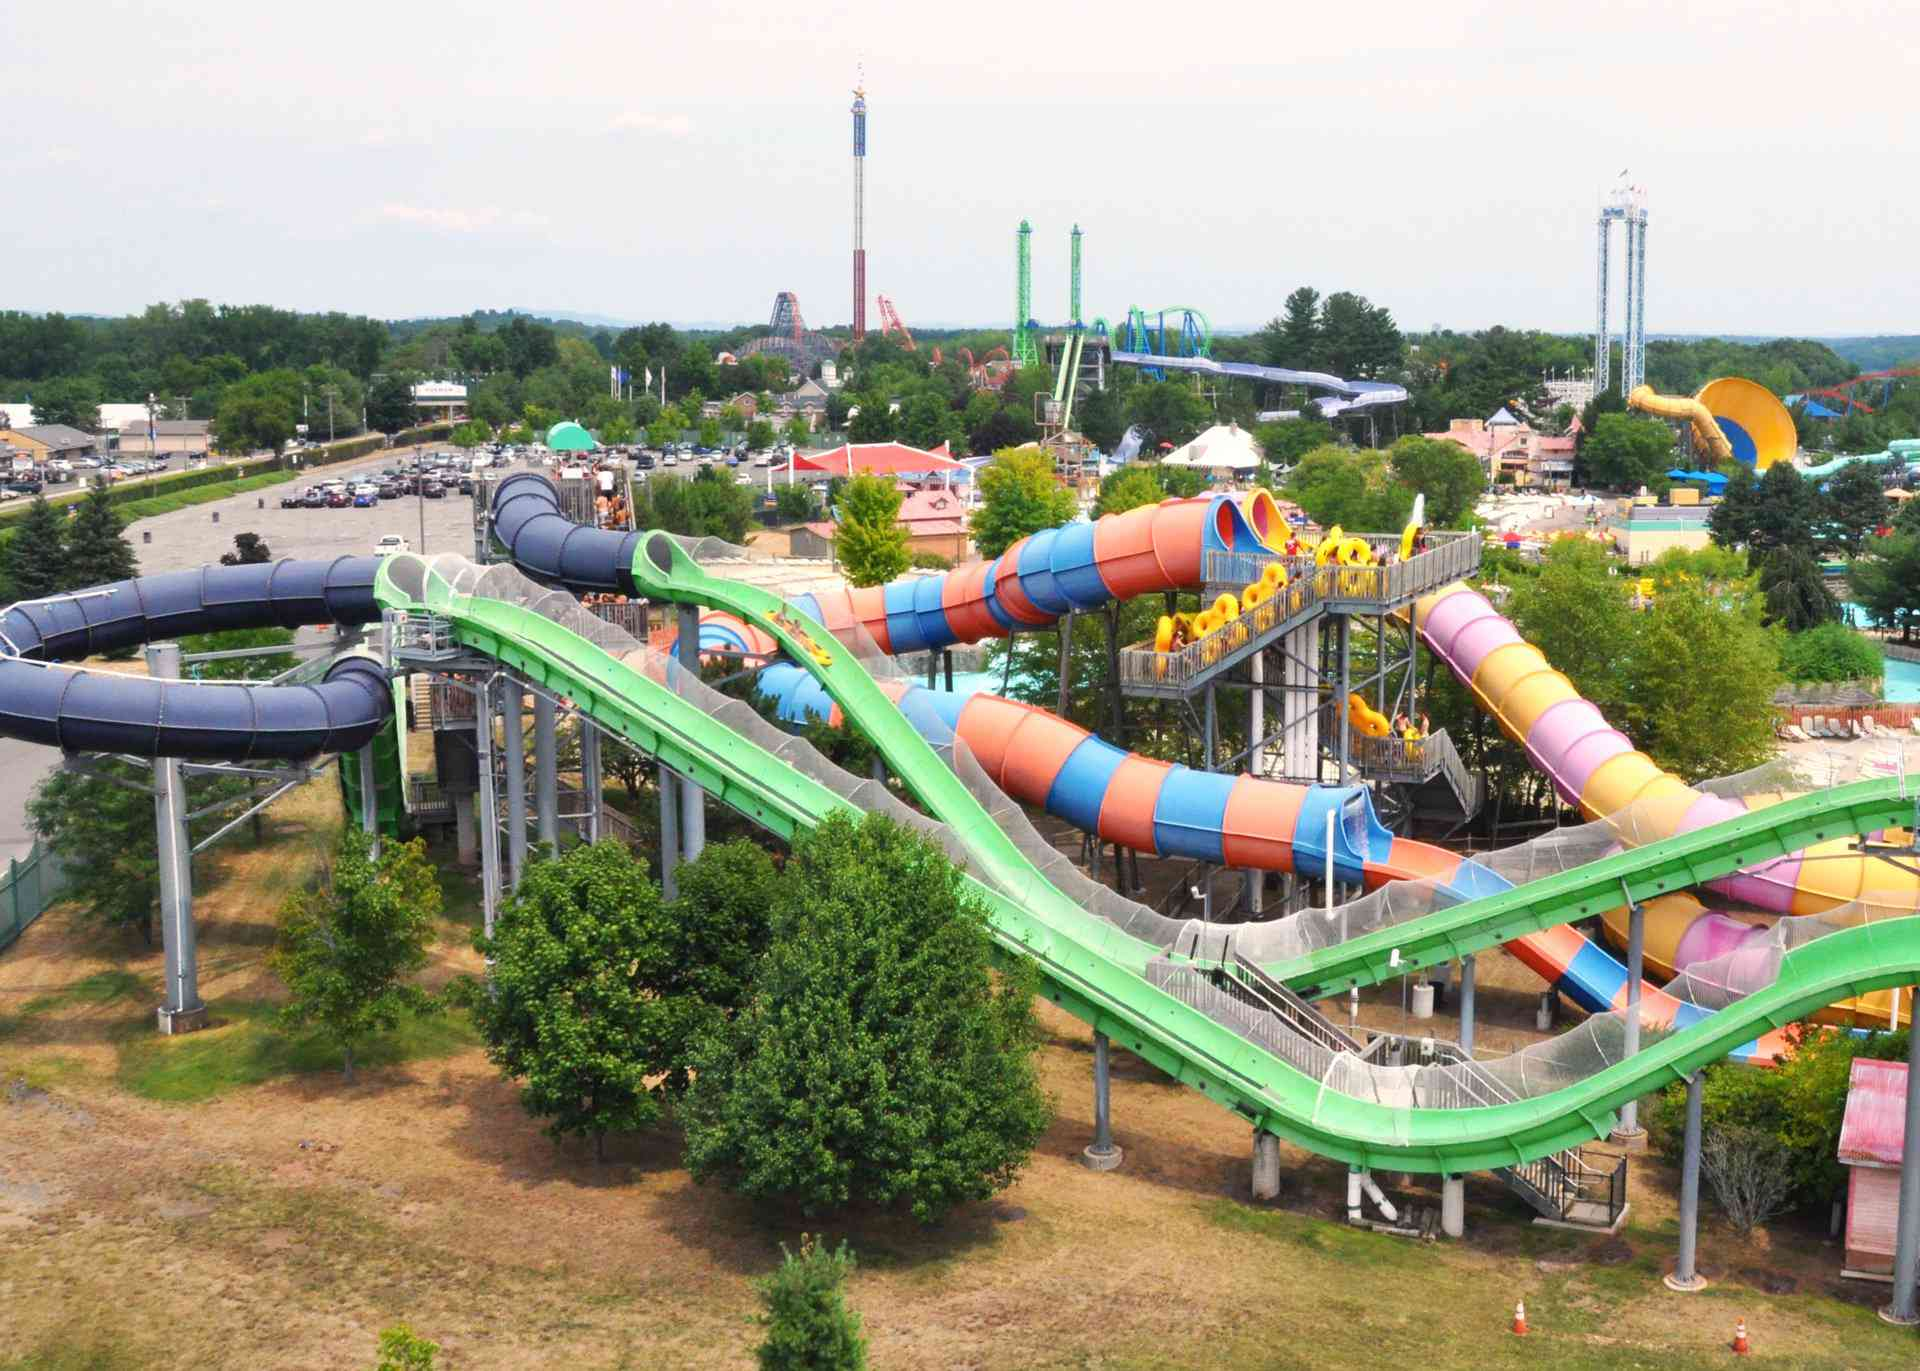 Hurricane Harbor Waterpark at Six Flags New England